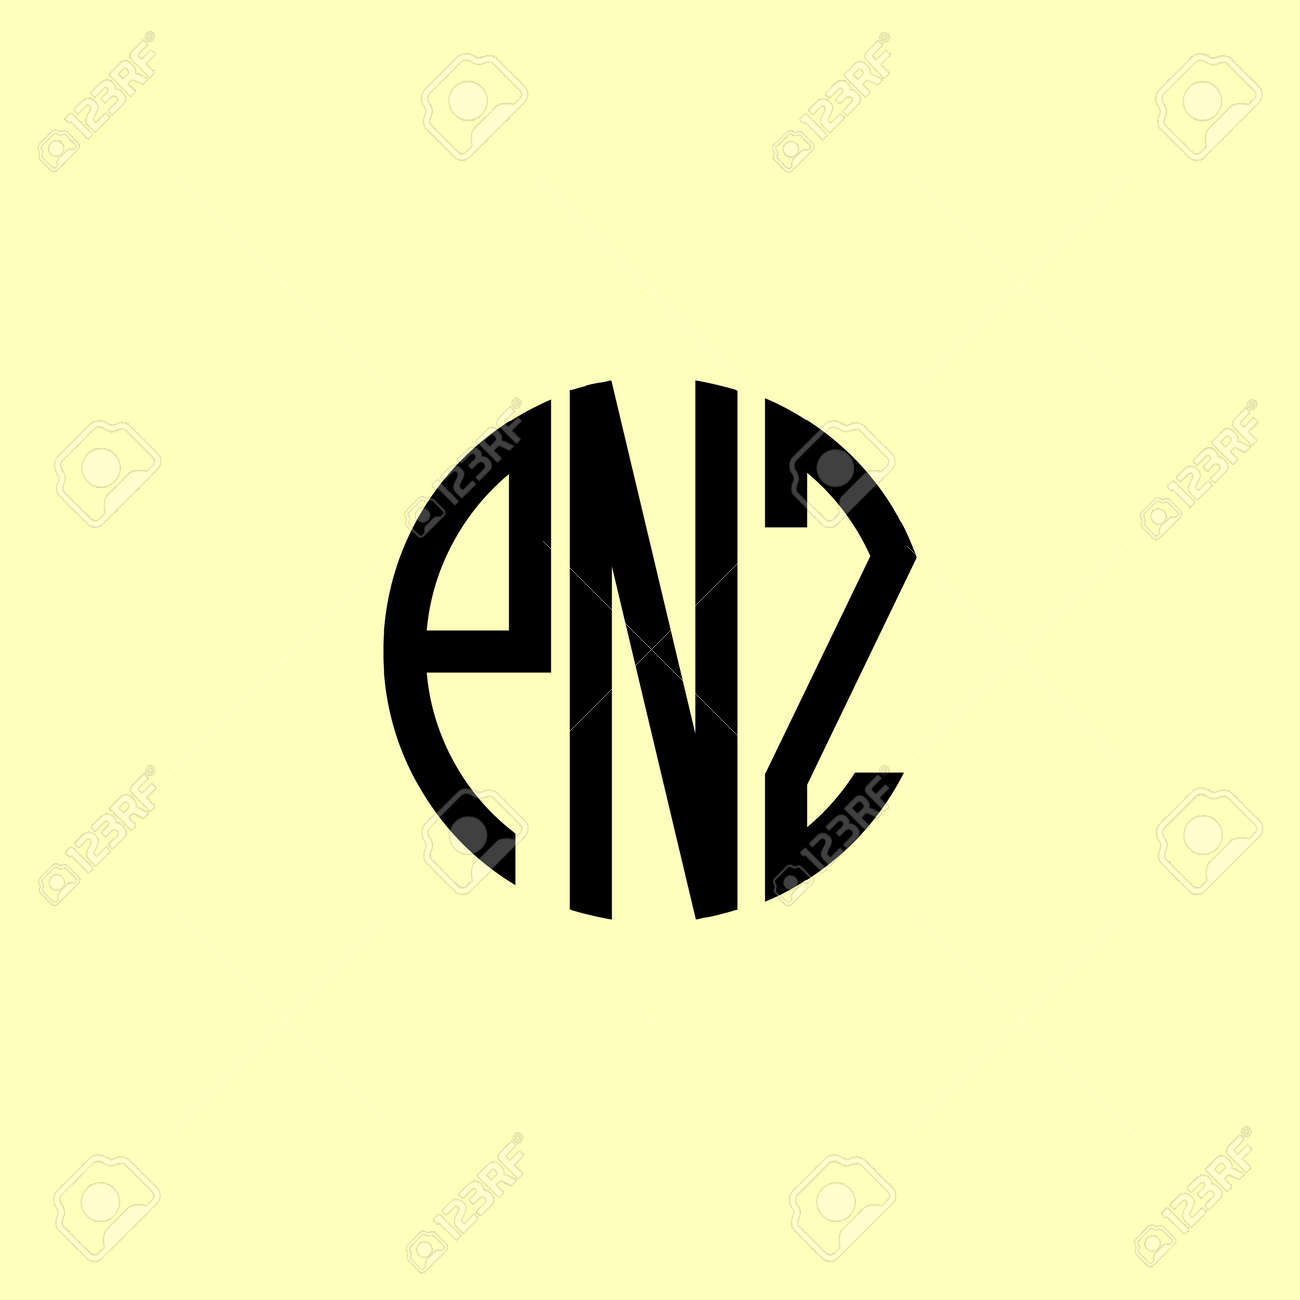 Creative Rounded Initial Letters PNZ Logo. It will be suitable for which company or brand name start those initial. - 173111356